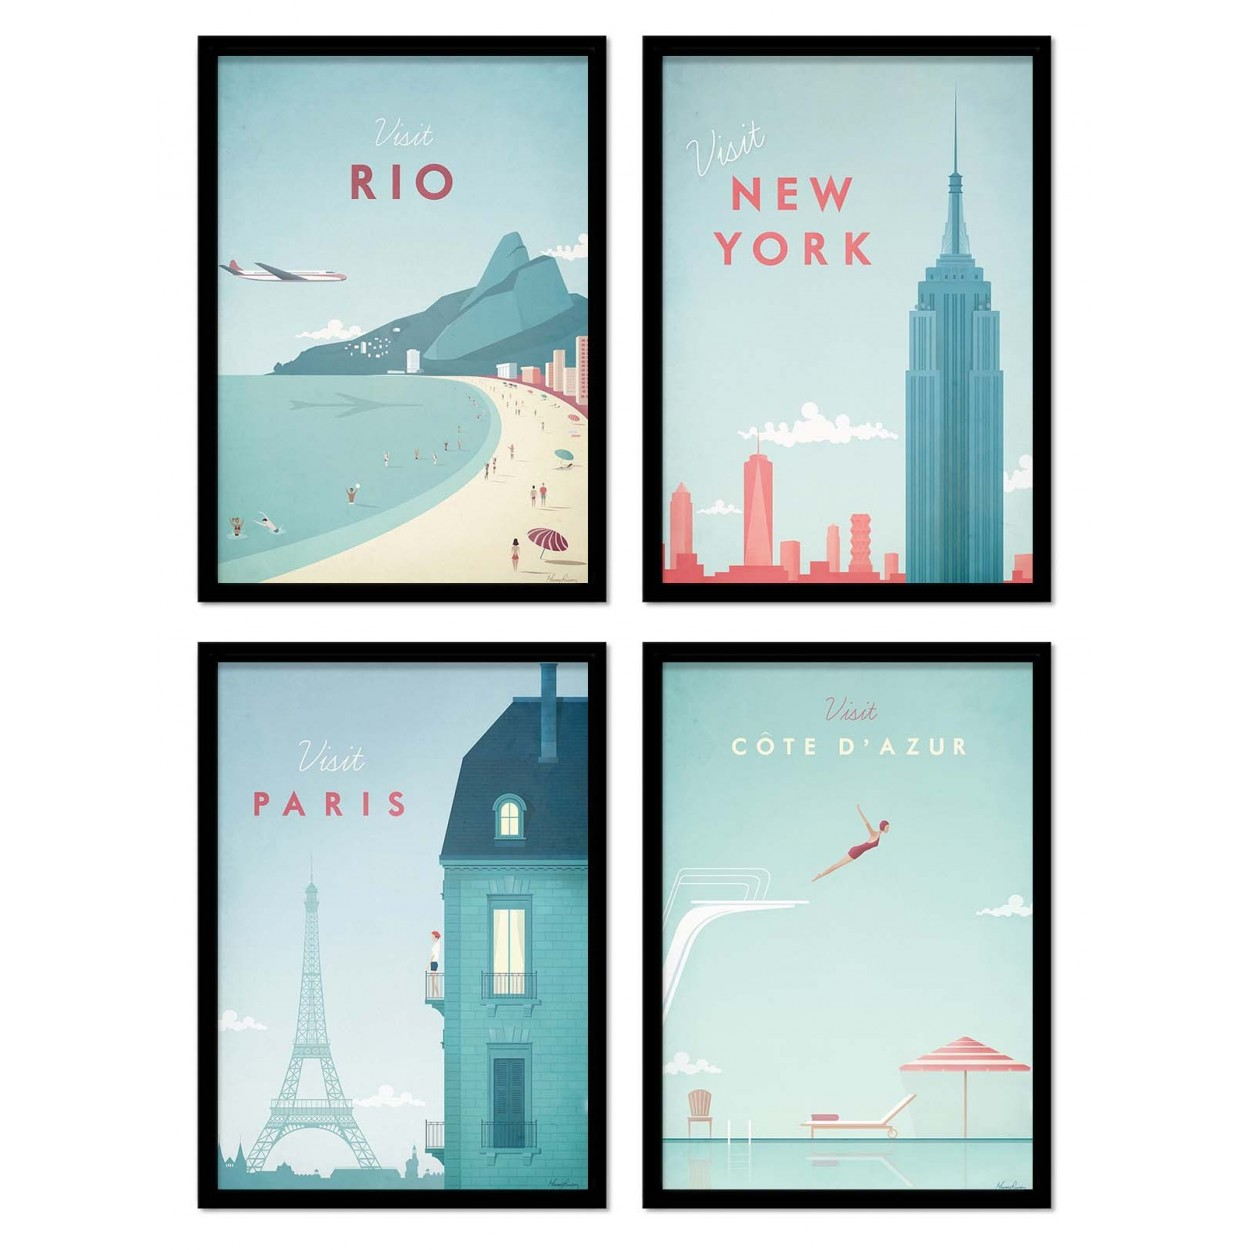 illustration photo art poster and vintage print of paris and new york